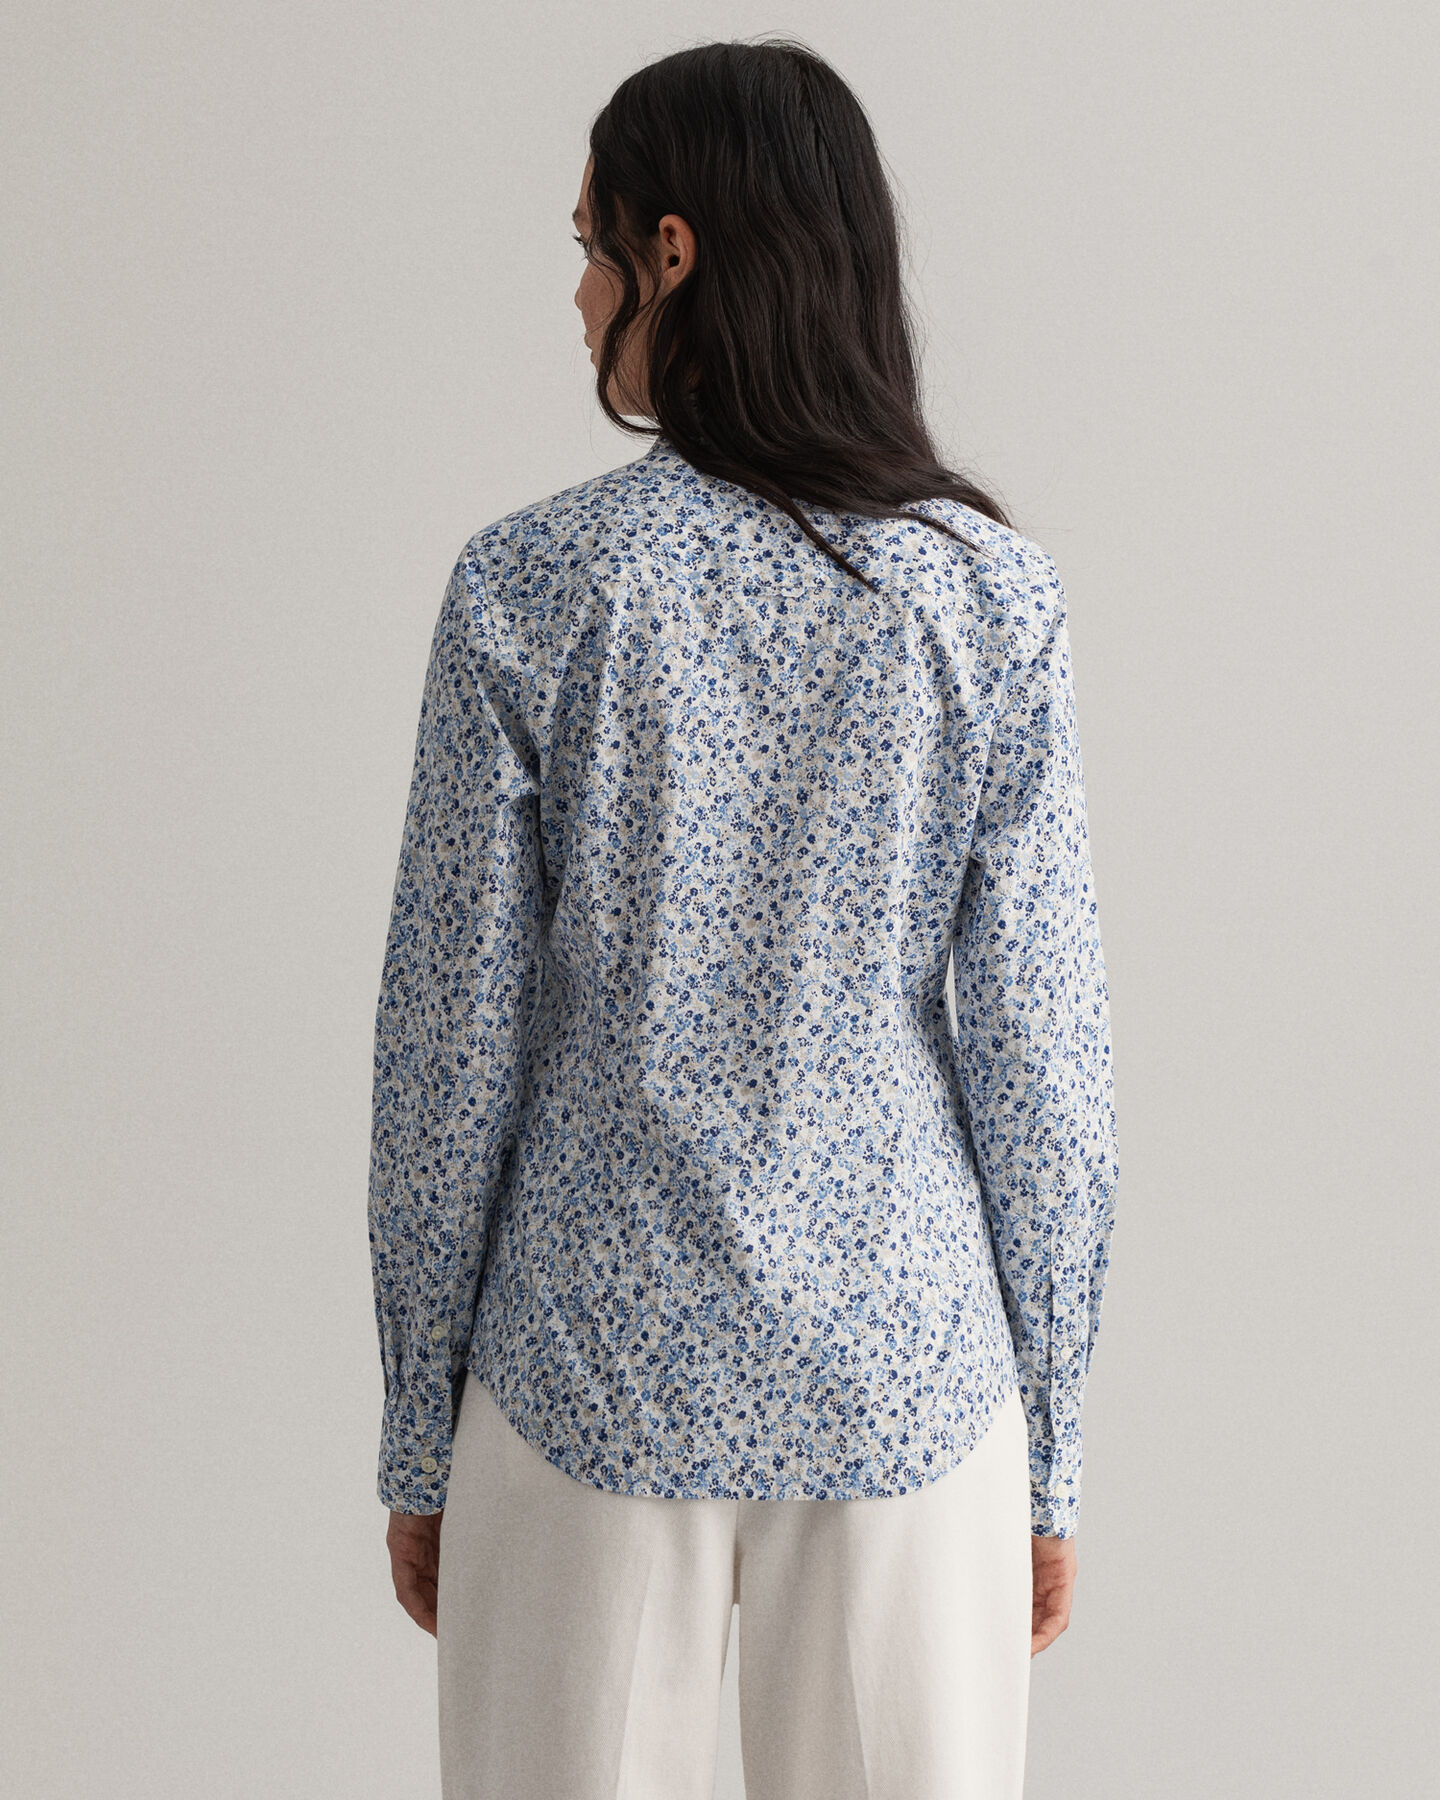 Micro Bouquet Stretch Broadcloth Bluse mit Print